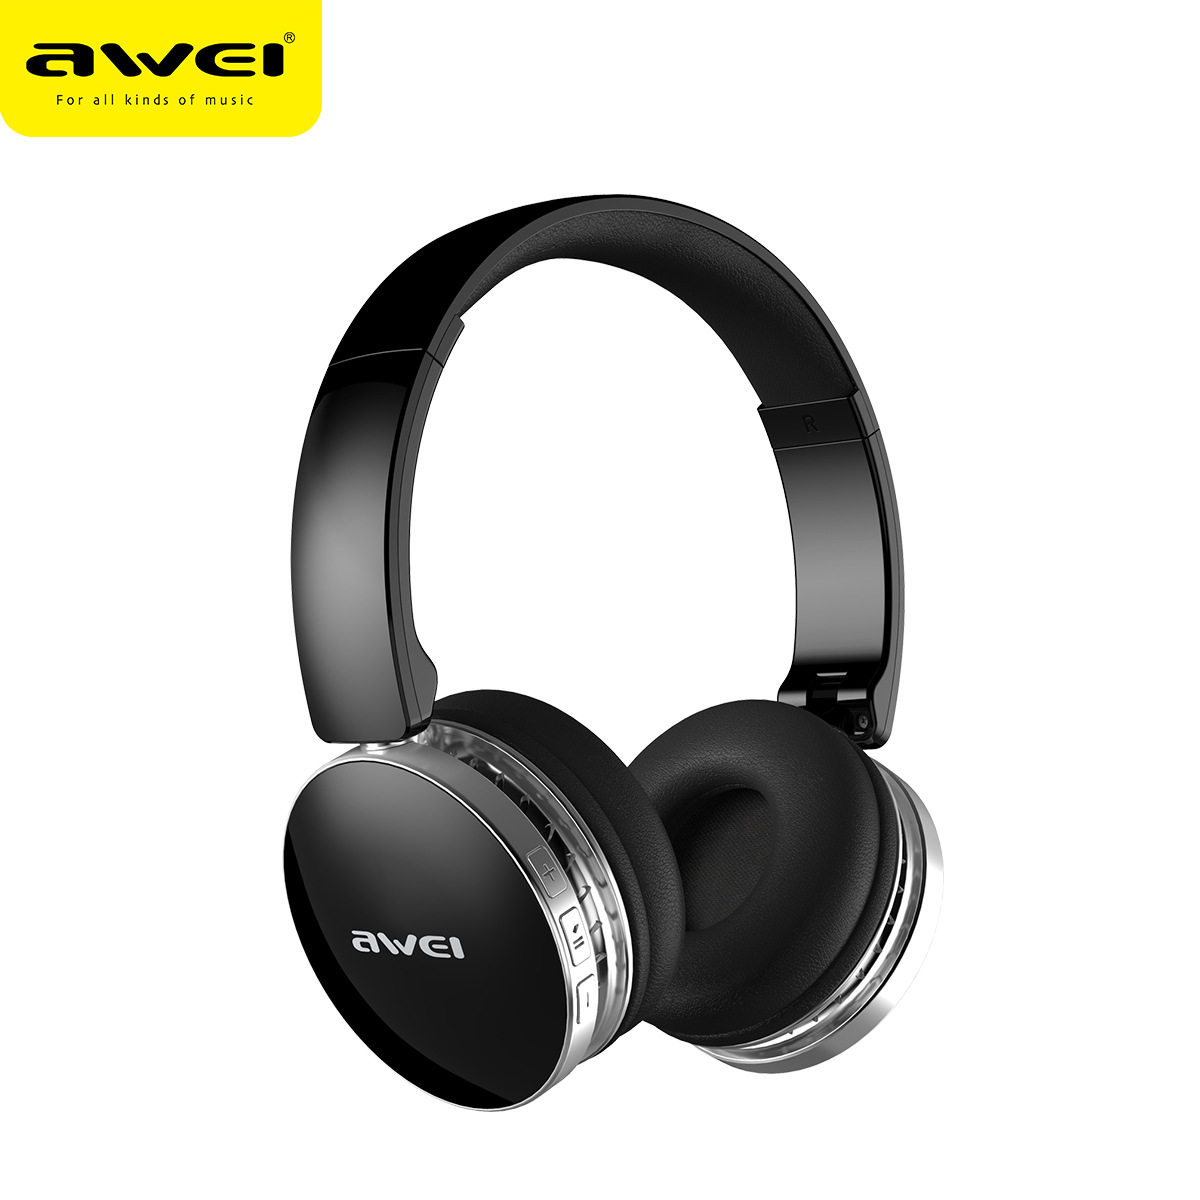 AWEI A500BL 2 in 1 Foldable Wired/ Wireless Bluetooth Headphone Stereo Sport Headphone Headset with Microphone headphone bluetooth wireless foldable sport handsfree headset with microphone fm radio mp3 player tf card wired stereo earphone